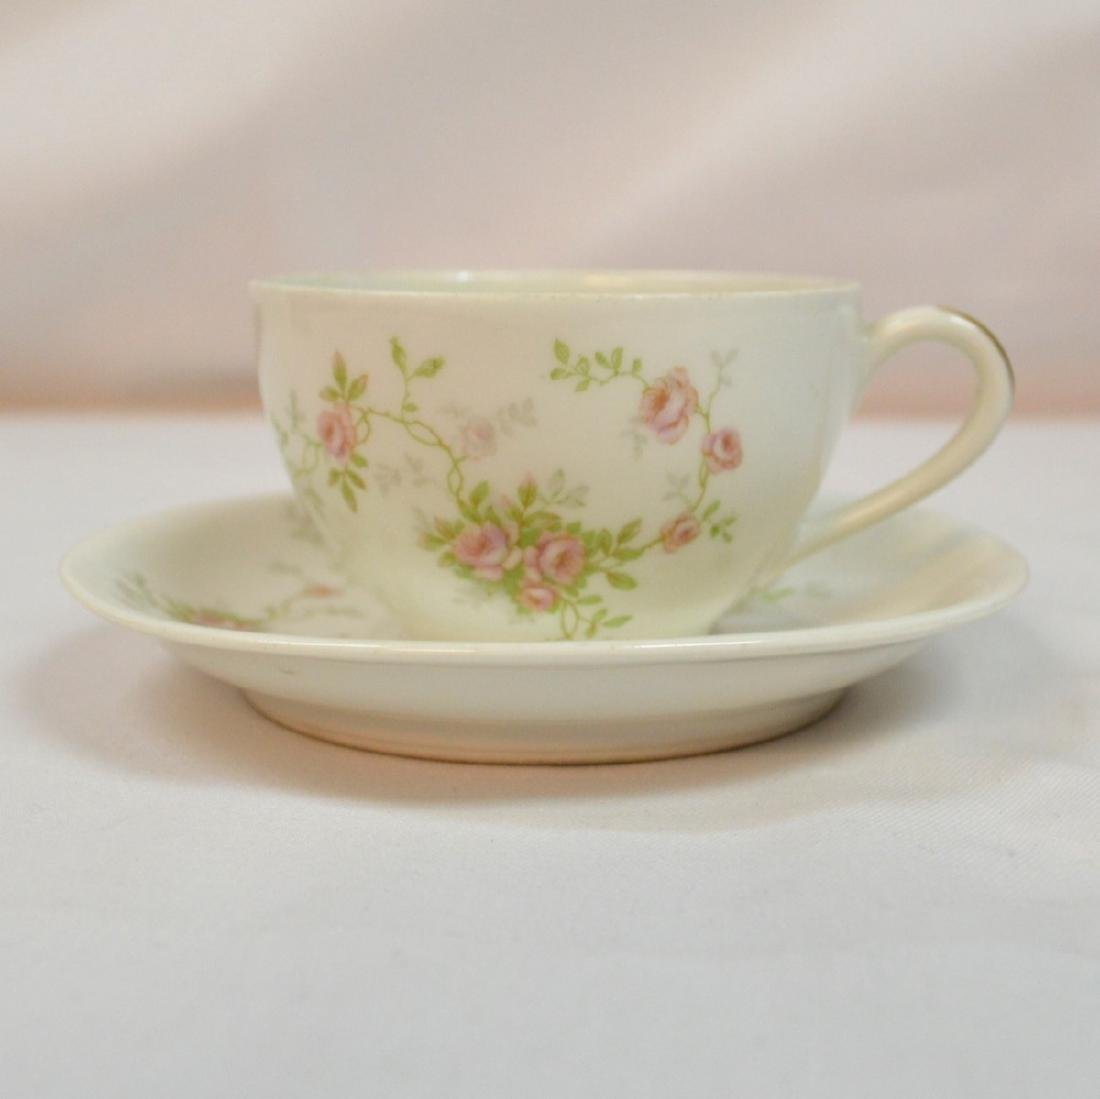 Antique Limoges Teacup and Saucer France